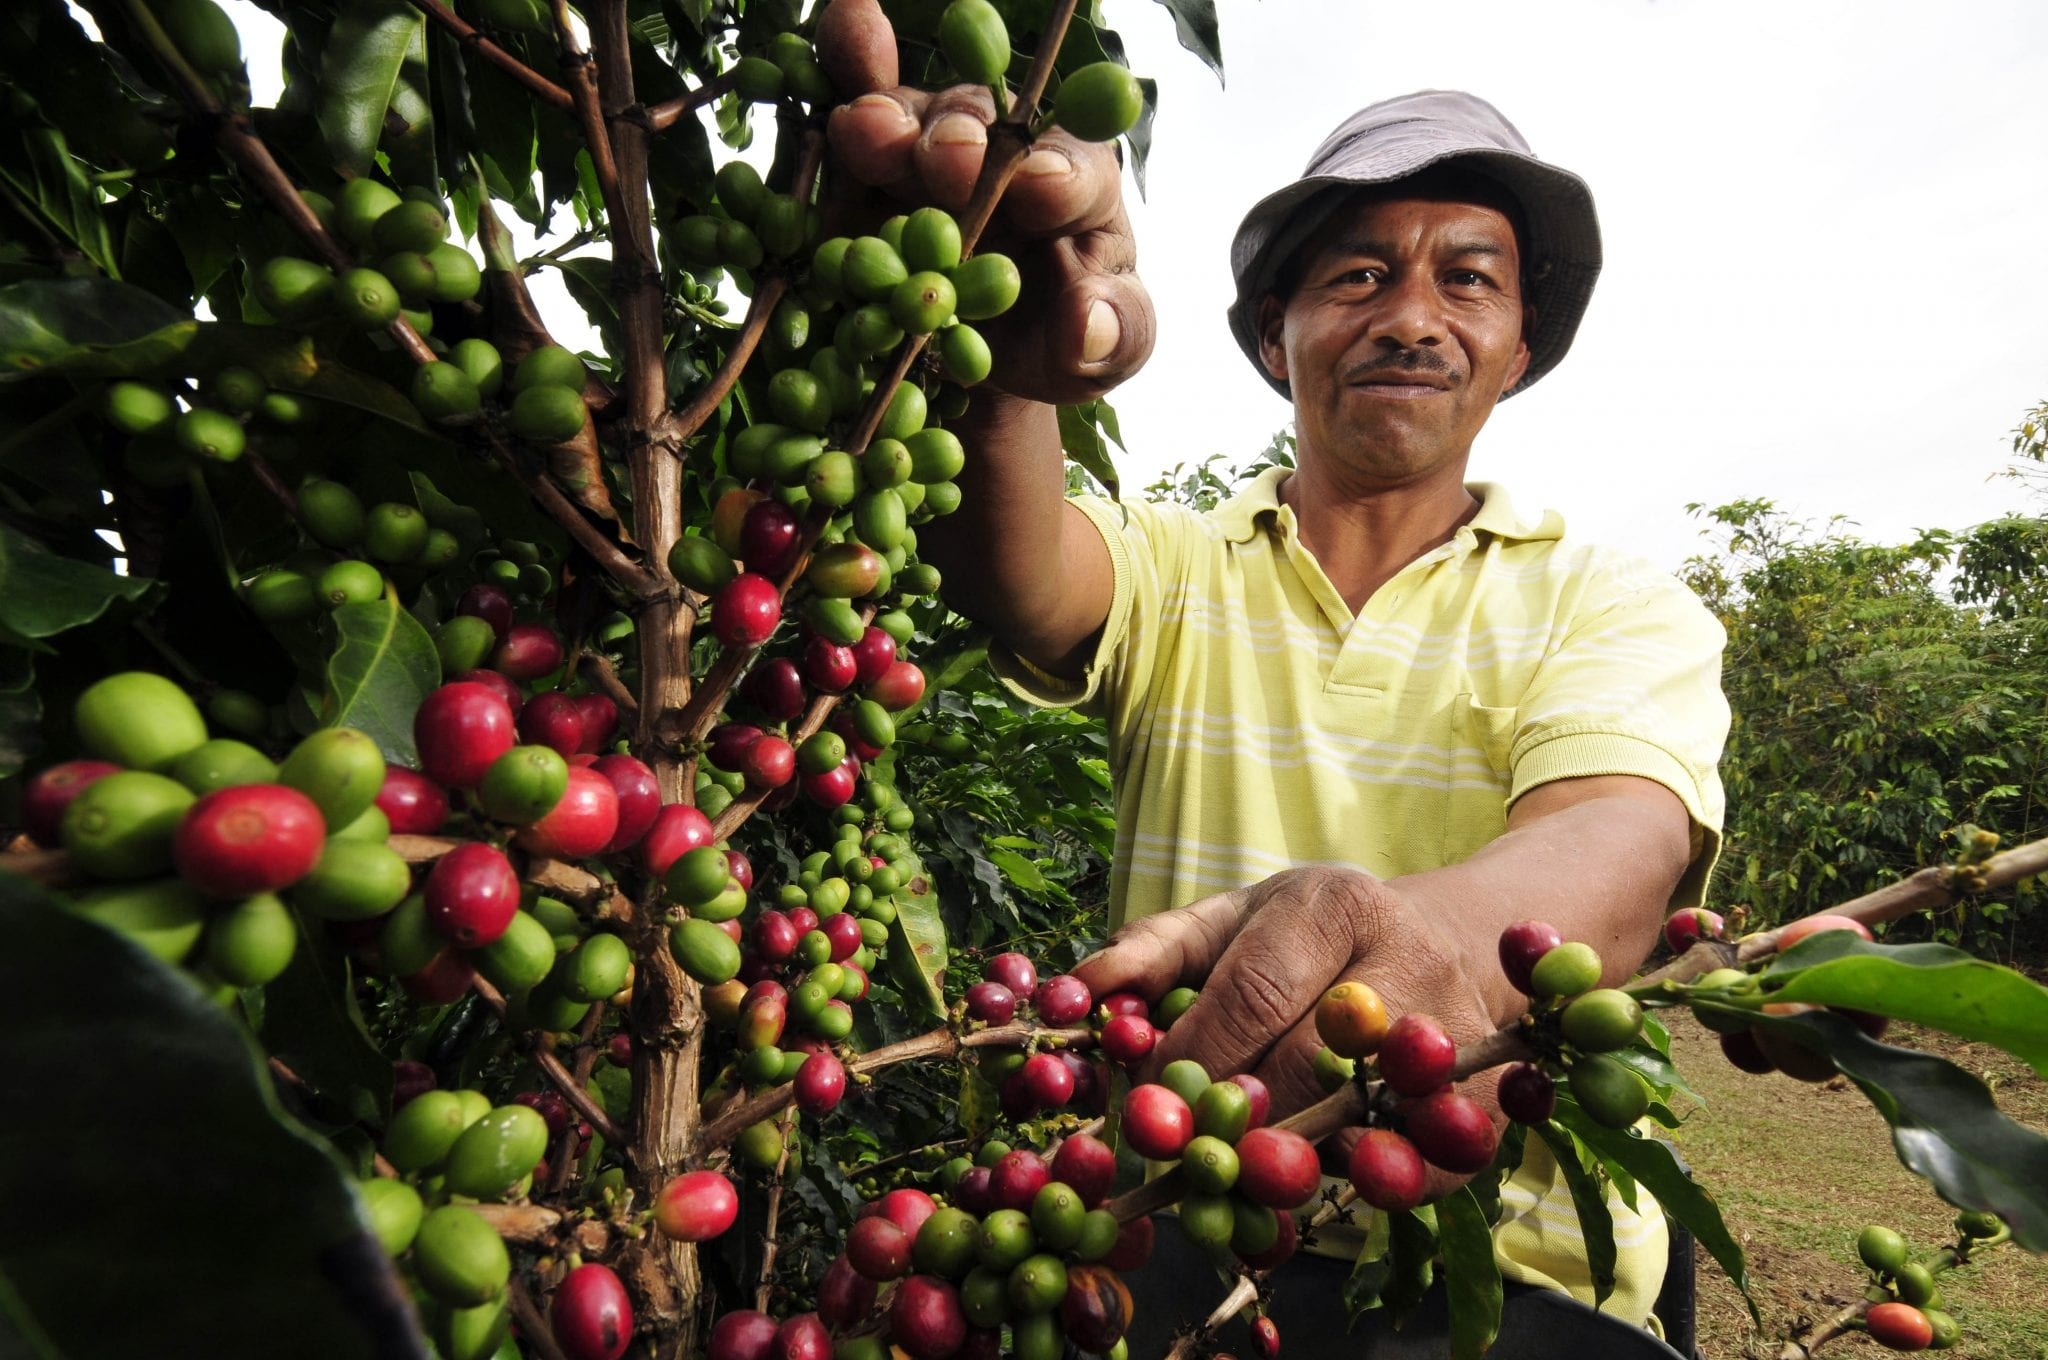 Does anyone know any case studys on an Ethiopian coffee farmer?